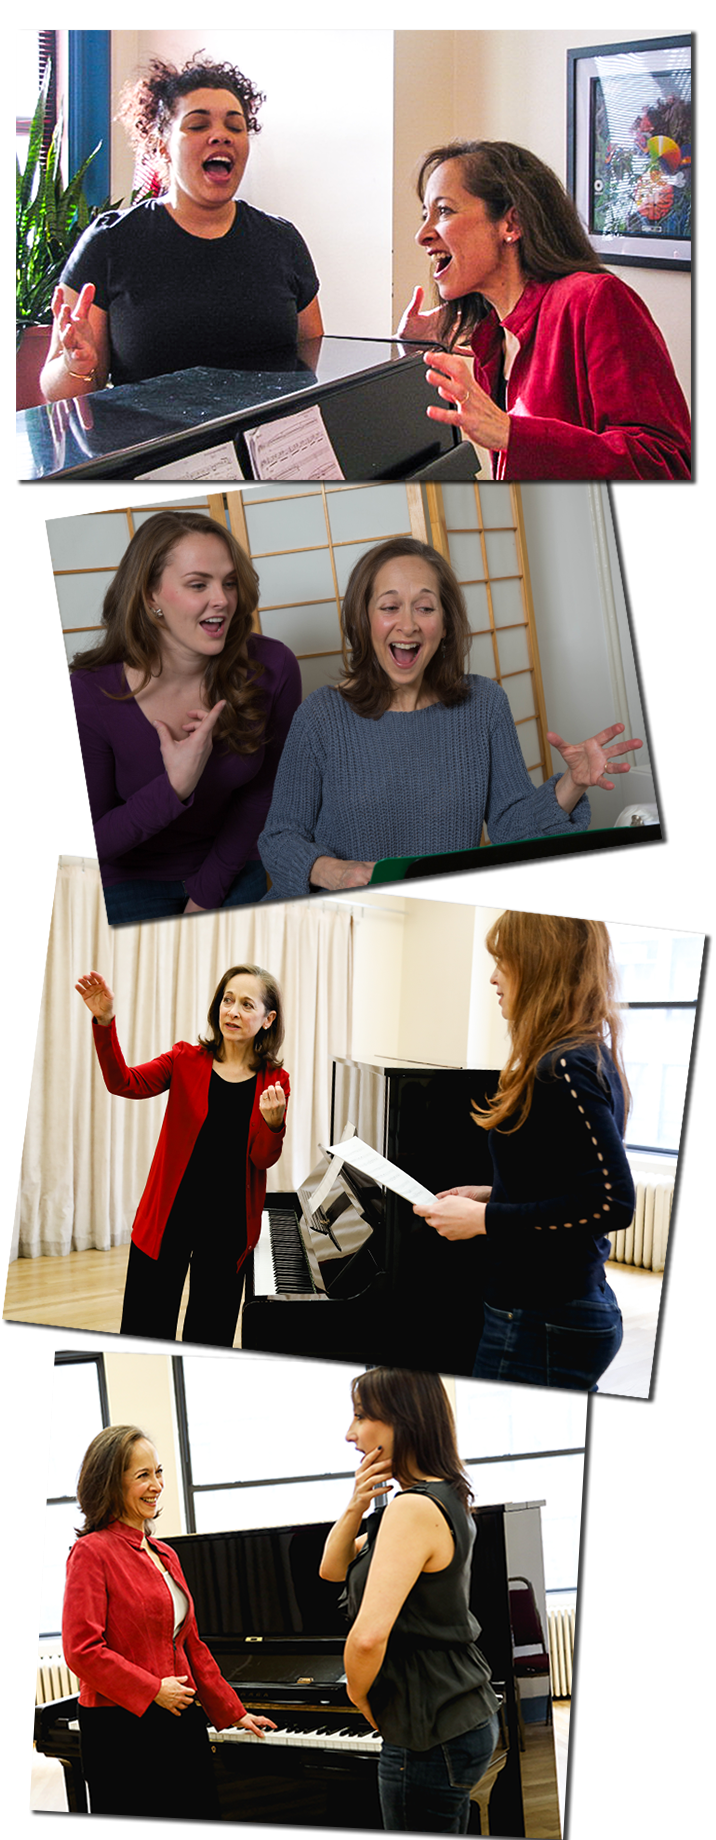 Lisa Rochelle Voice Teacher NYC Best Voice Teacher NYC NYC Best Voice teacher Voice Lessons NYC Healthy Belting Learn Broadway mix/belt Holistic Voice Teacher Musical Theater College Audition Prep Singing Voice Specialist Therapeutic Voice lessons